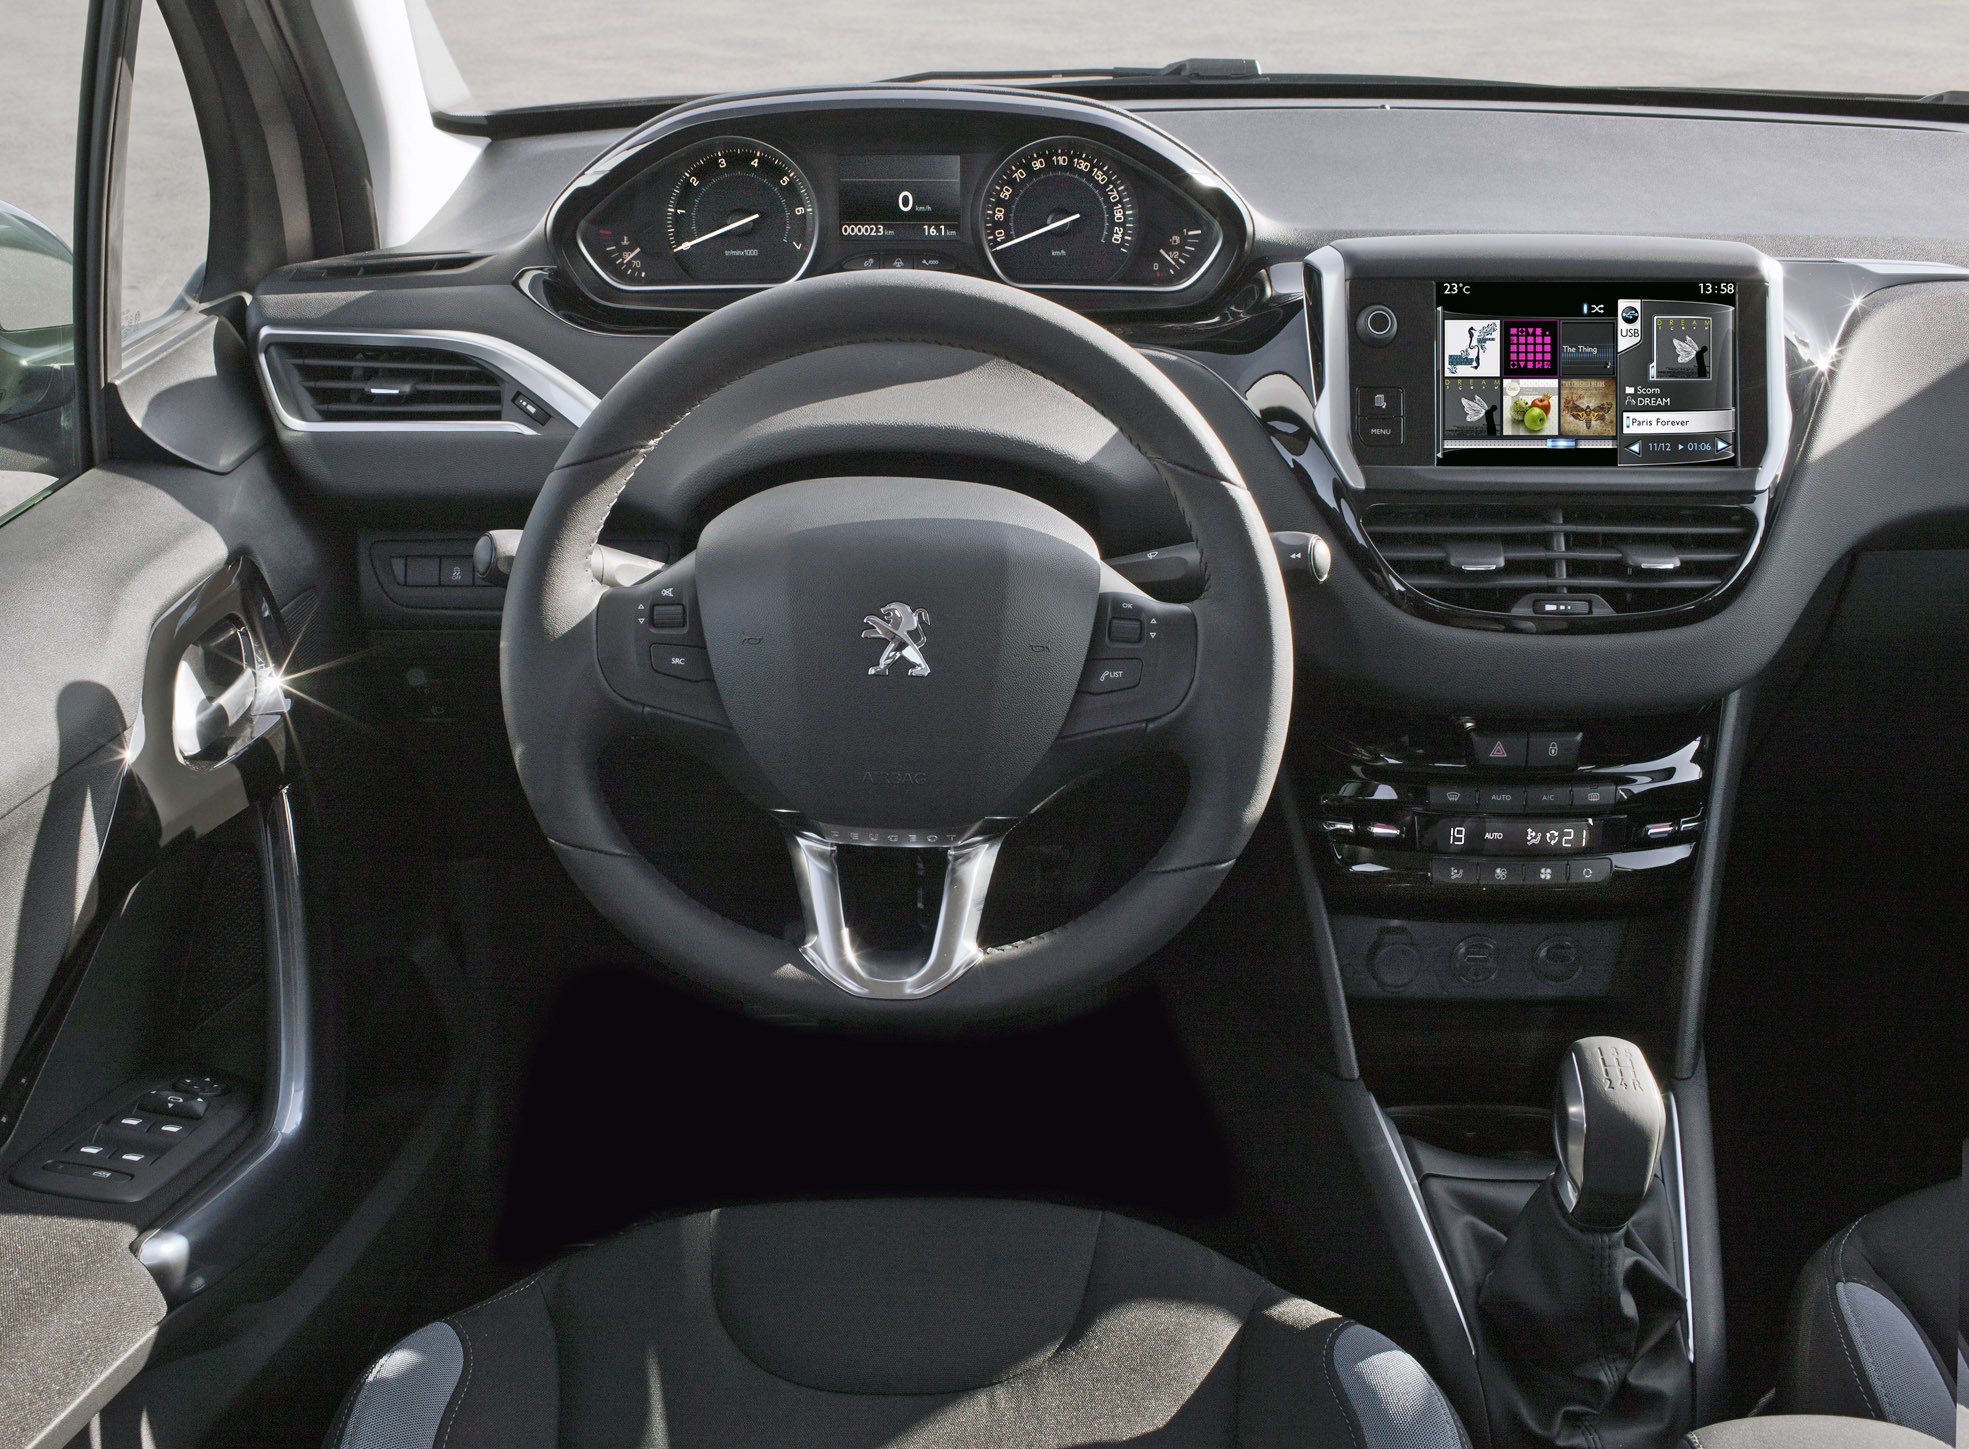 Quelle peugeot 208 choisir for Interieur peugeot 208